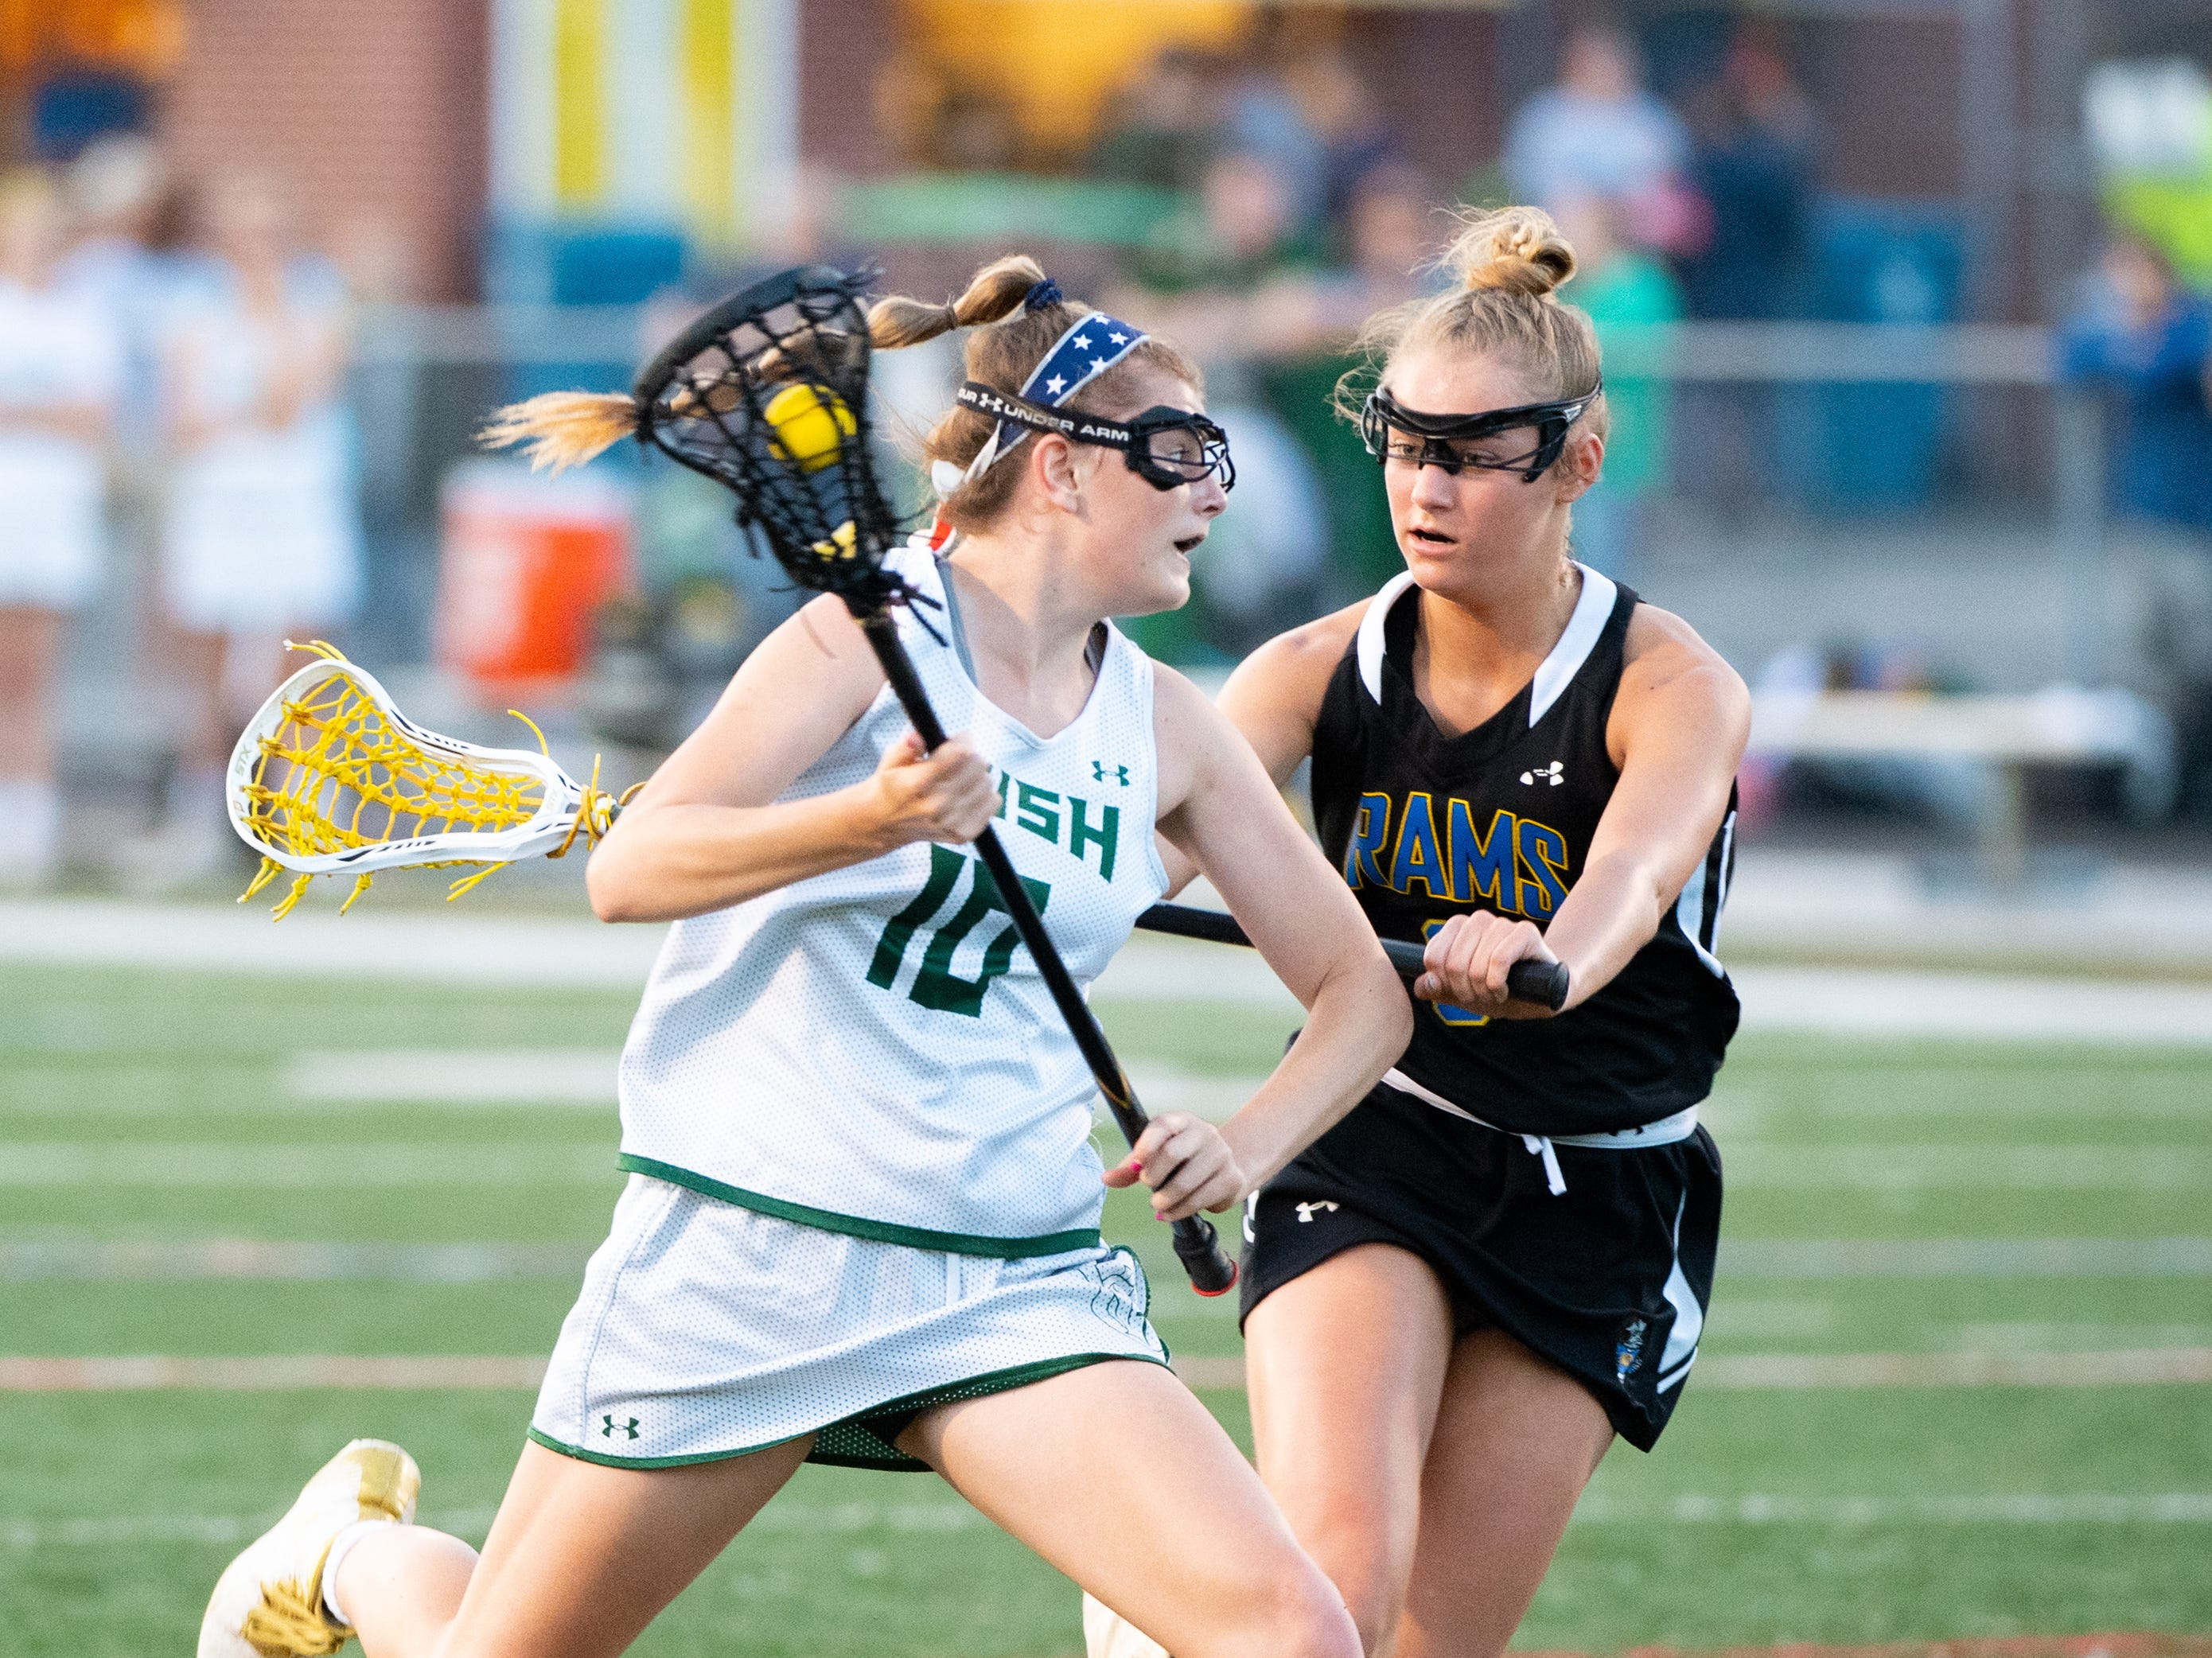 Sydney Mentzer (10) tries to evade the defense during the YAIAA girls lacrosse championship game between York Catholic and Kennard-Dale, May 10, 2019 at Eastern York High School. The Rams defeated the Fighting Irish 11 to 10.